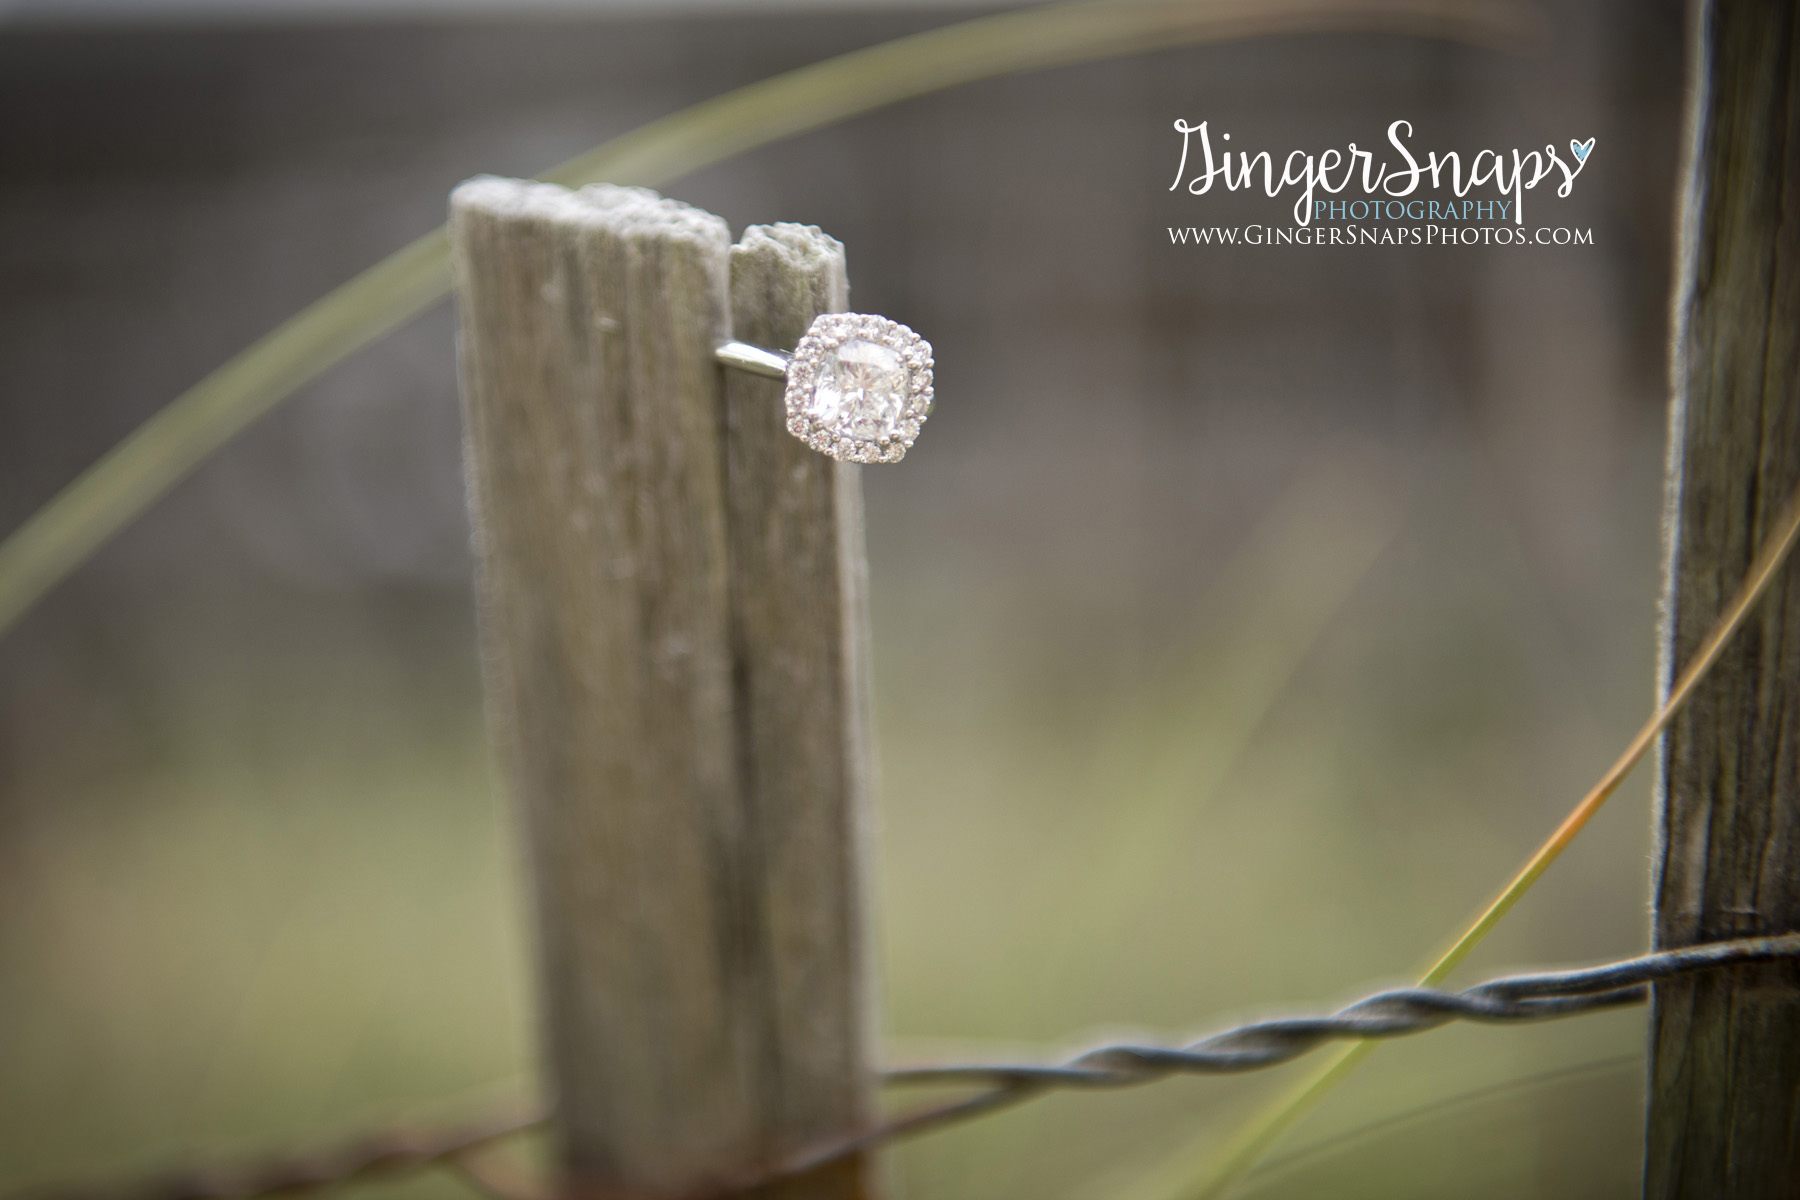 GingerSnaps Photography - 019.jpg